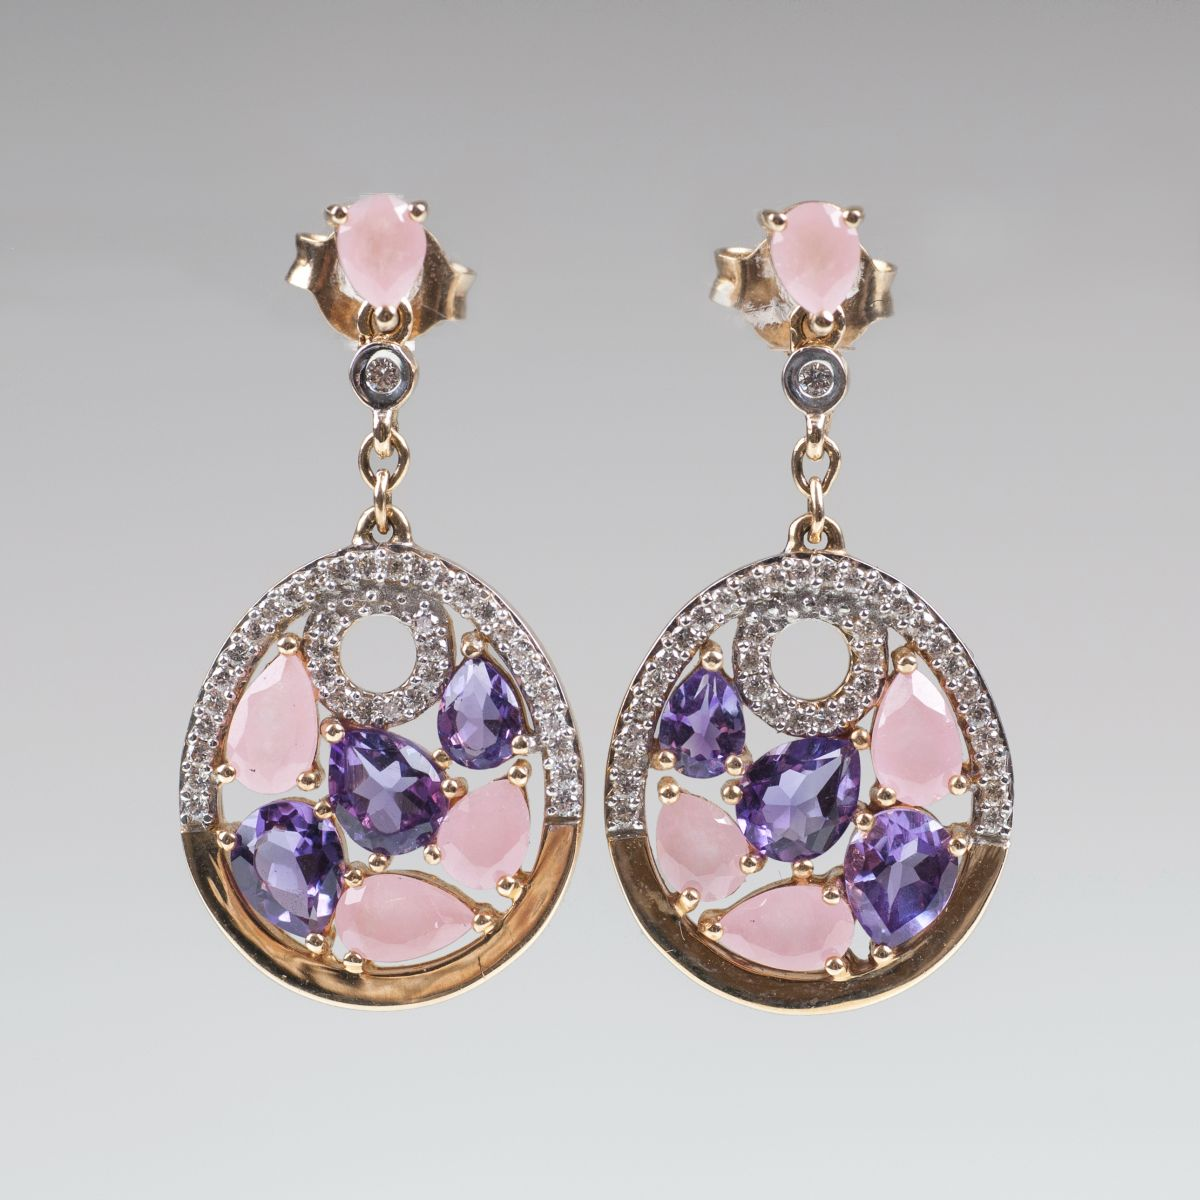 A pair of amethyst jade earpendants with diamonds